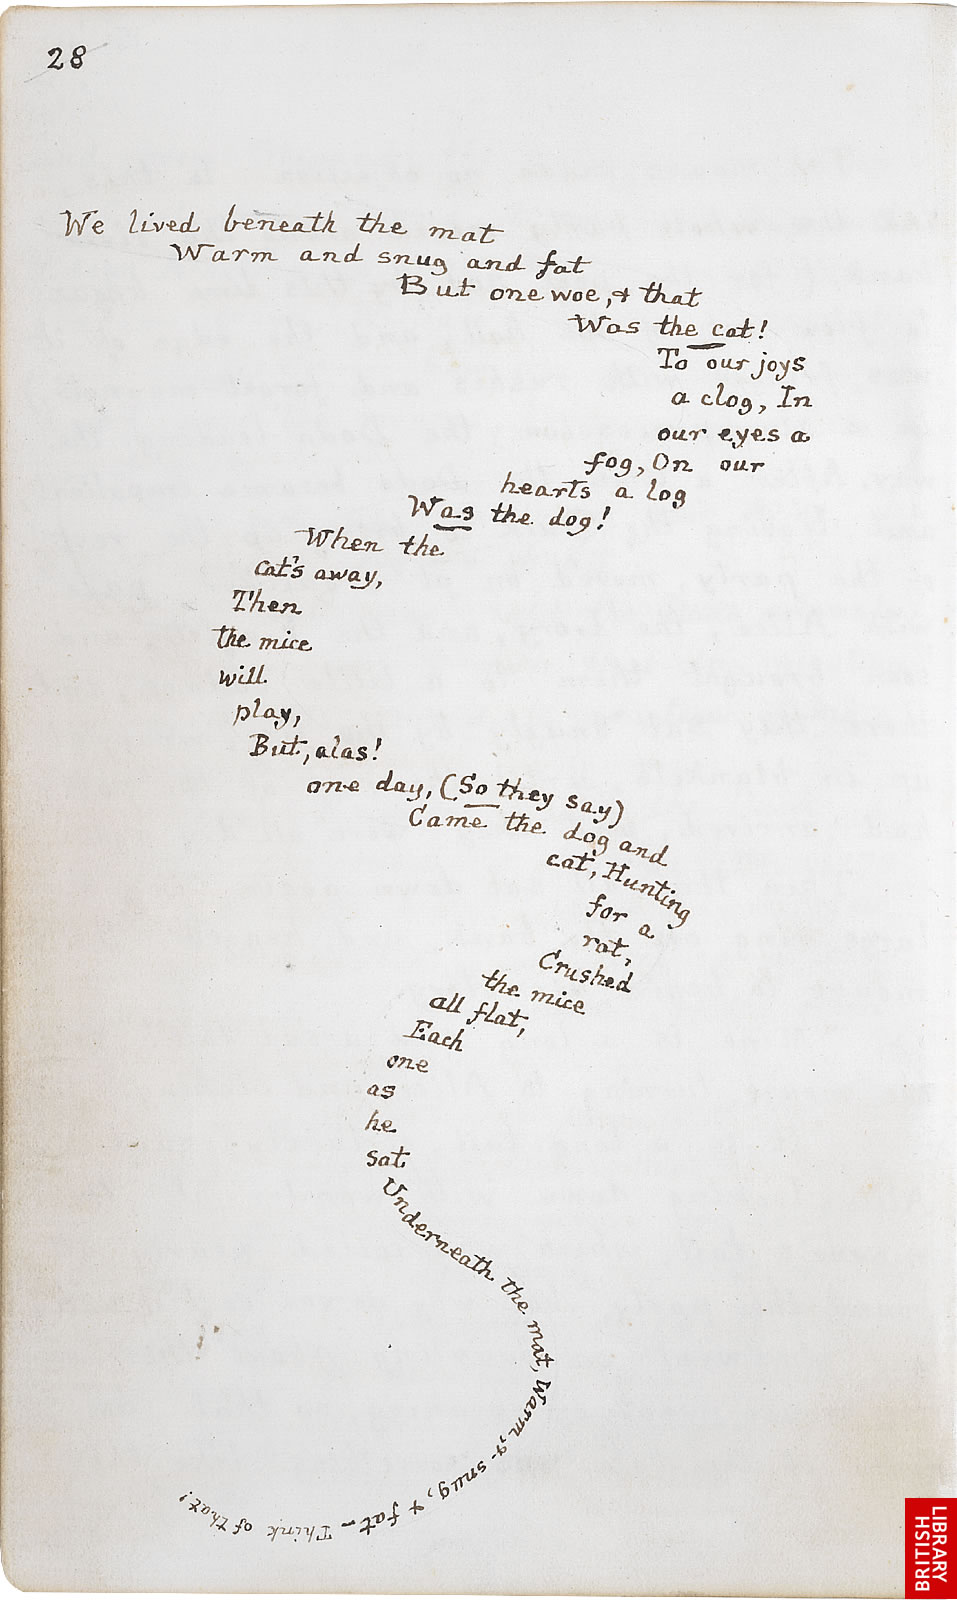 A page from the original handwritten and illustrated manuscript of Alice's Adventures Under Ground by Lewis Carroll.